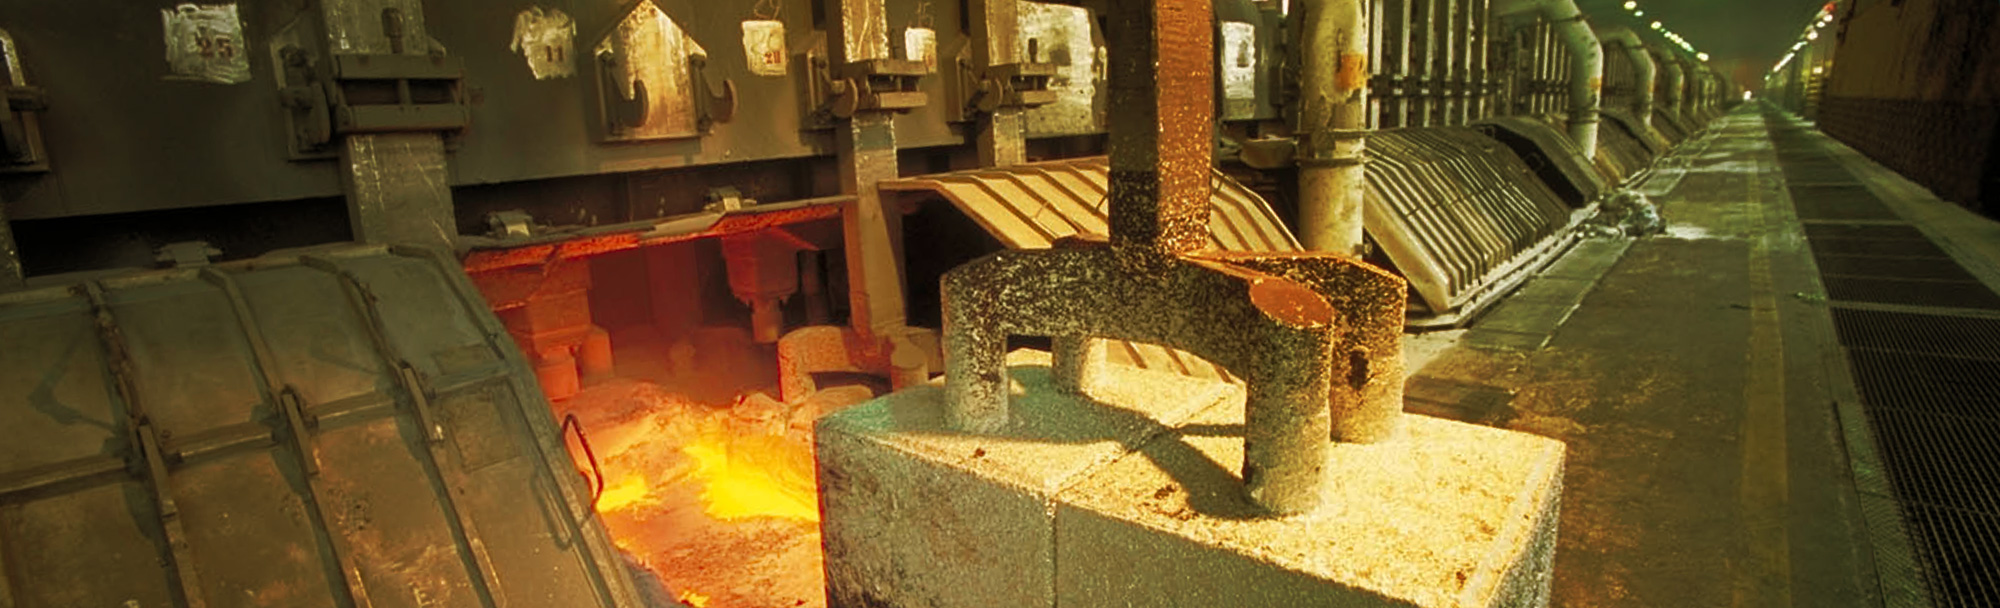 Aluminum Smelting and Refining